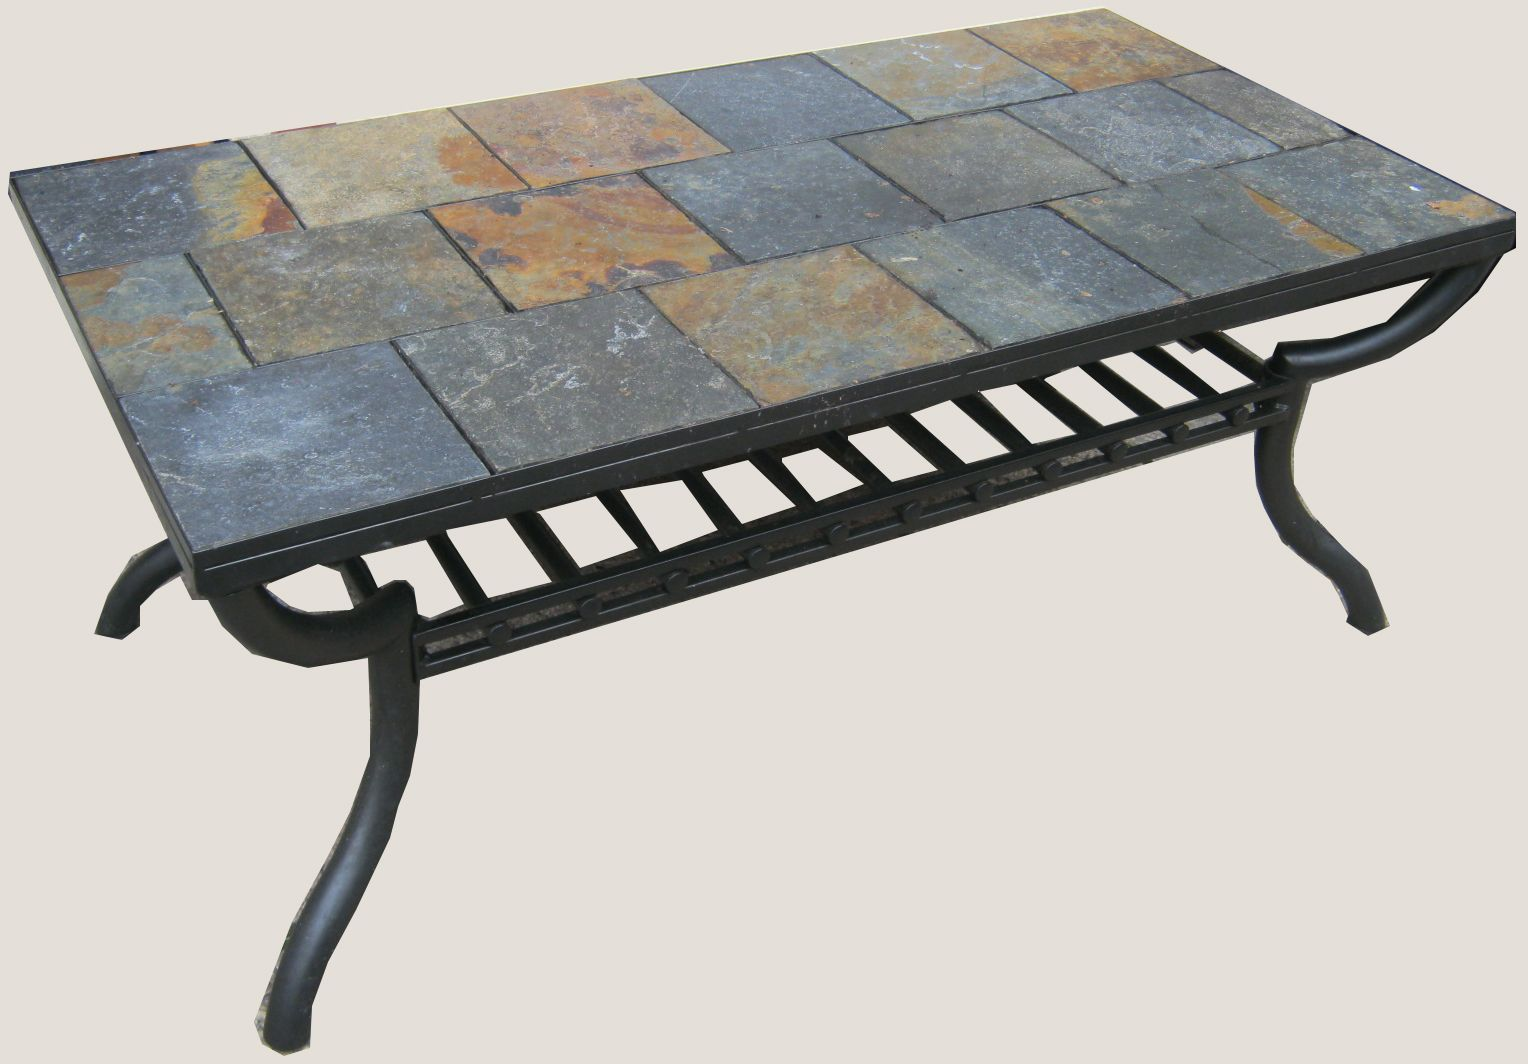 Easy And Affordable Diy Coffee Table Https Www Goodnewsarchitecture Com 2018 02 17 Easy Affordable Diy Tiled Coffee Table Slate Coffee Table Diy Coffee Table [ 1064 x 1528 Pixel ]